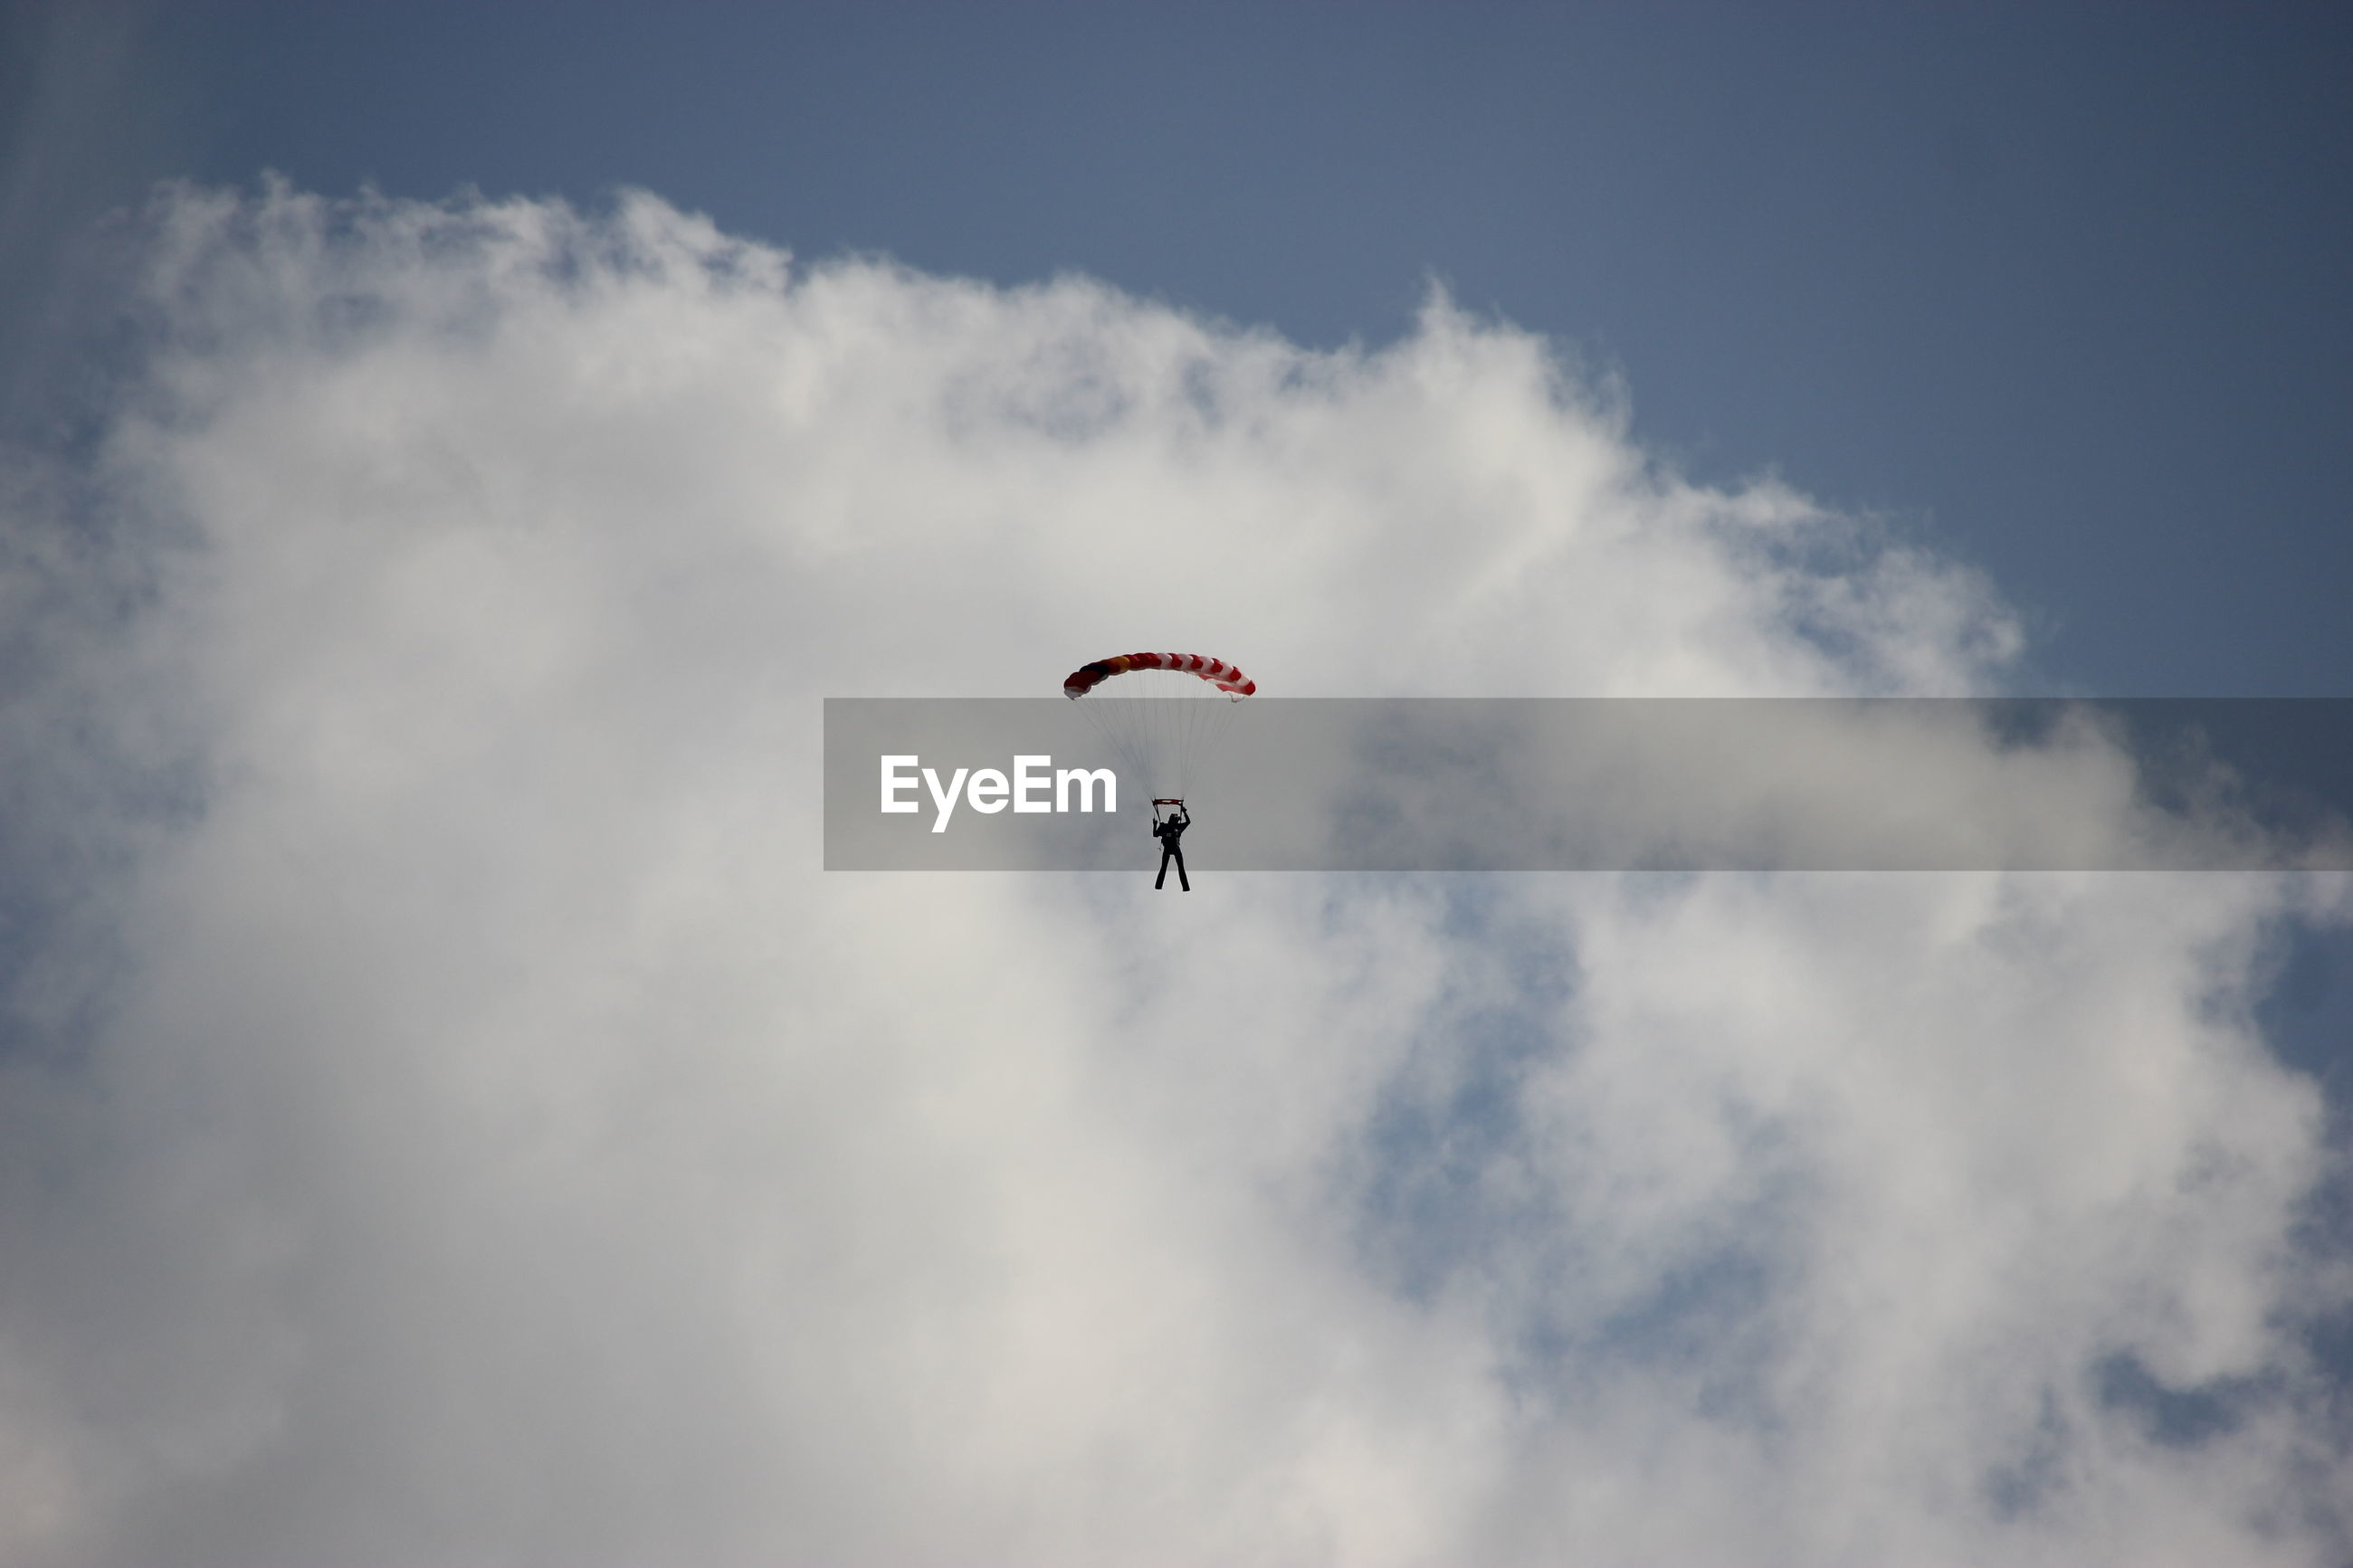 LOW ANGLE VIEW OF PERSON PARAGLIDING IN SKY